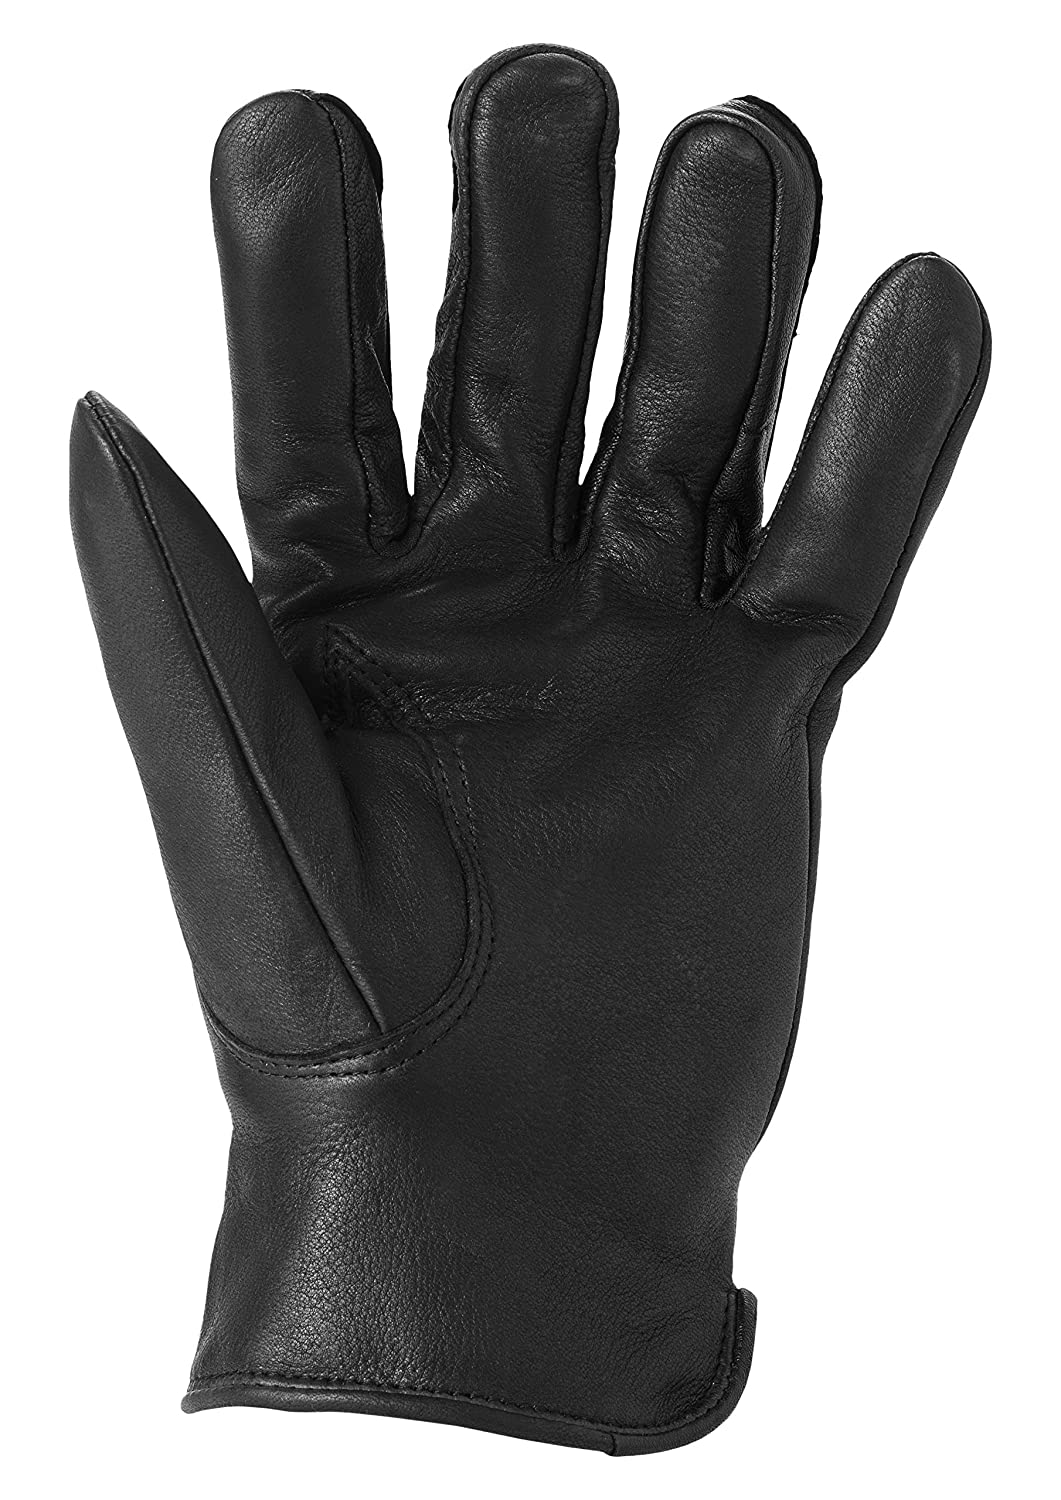 Leather driving gloves mercedes - Ansell Projex 97 979 Leather Driver Glove Medium 1 Pair Work Gloves Amazon Com Industrial Scientific